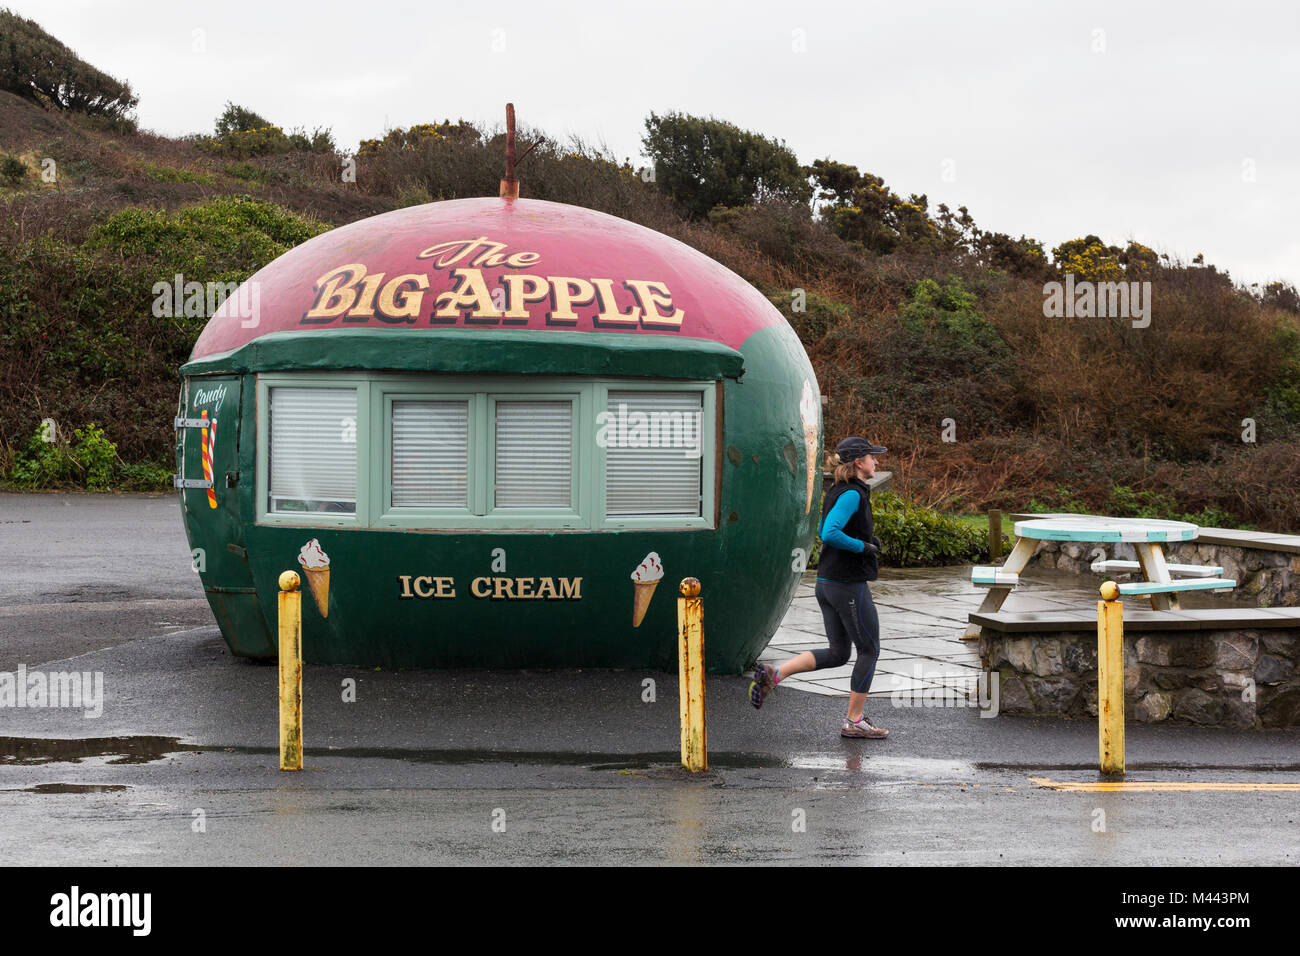 Food and ice cream stall at the beach in winter off-season in Mumbles in the shape of an apple - Stock Image